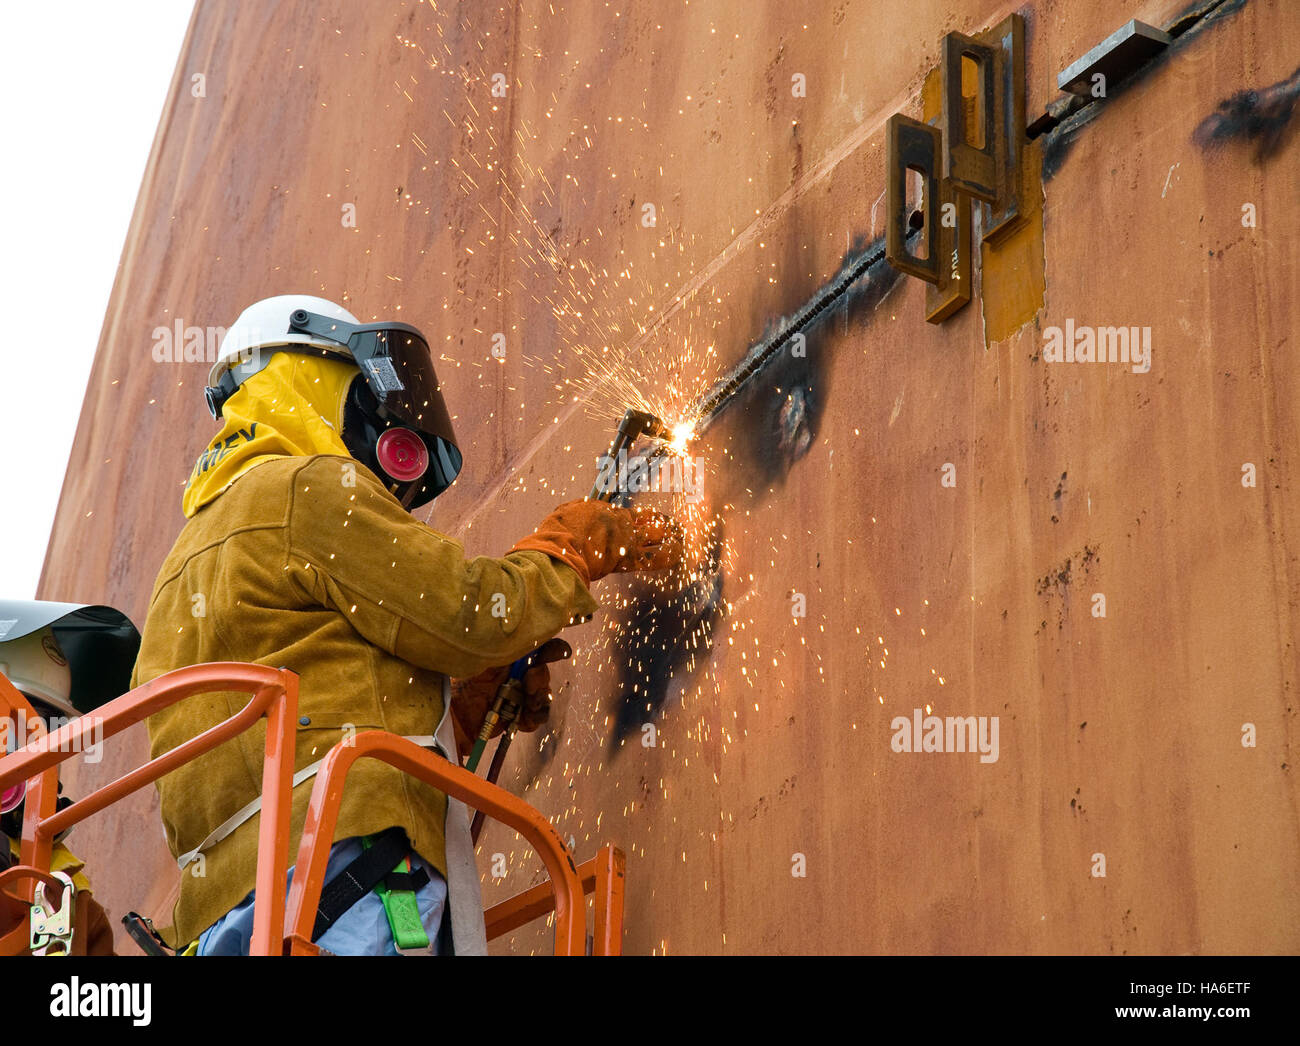 departmentofenergy 7448033130 HWCTR Decommissioning - Stock Image